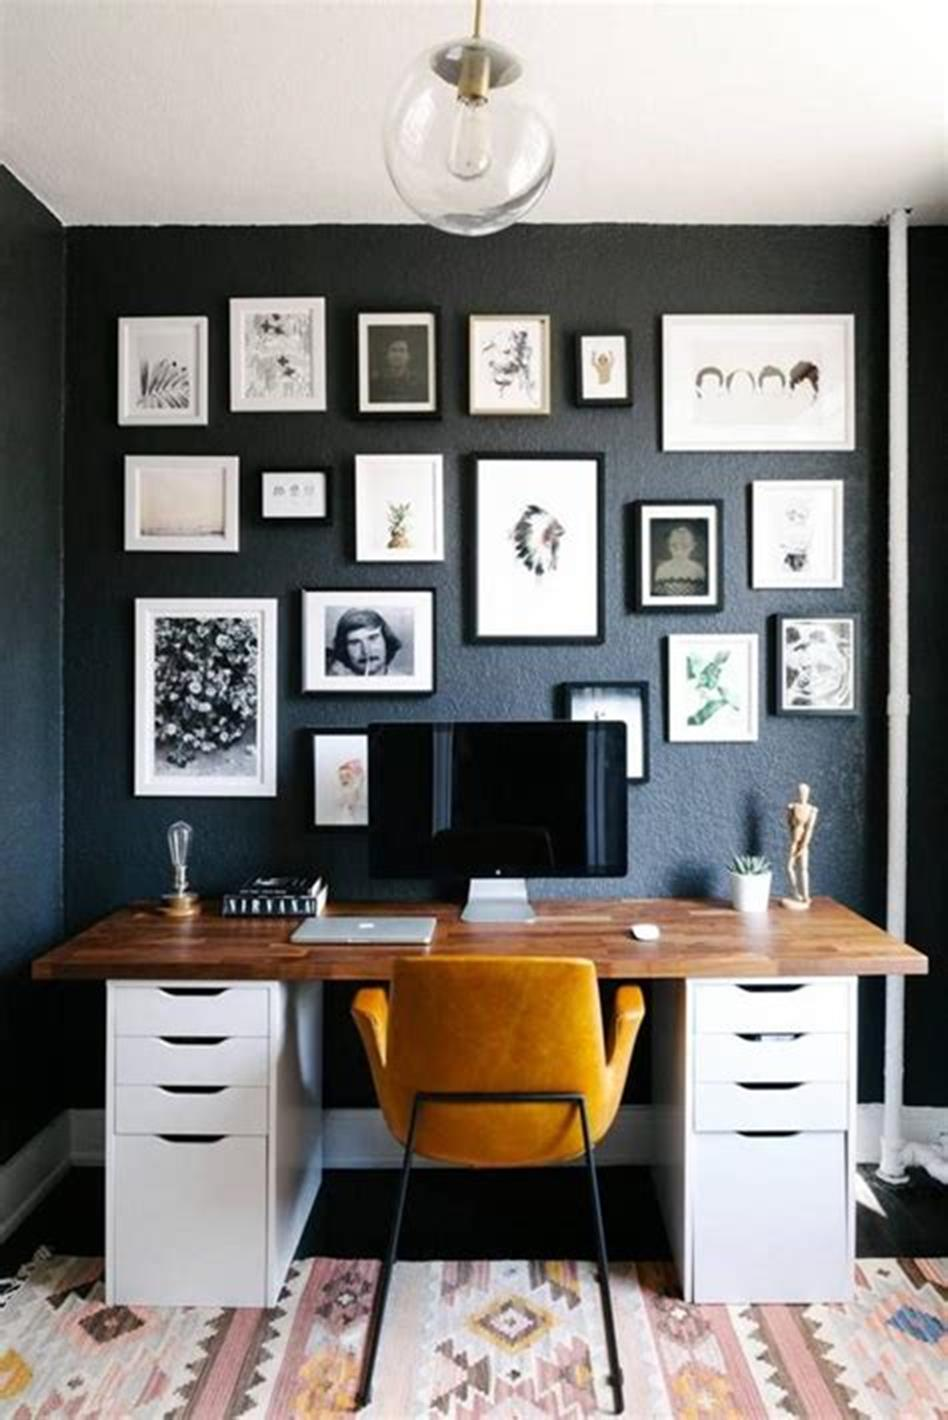 50 Best Small Space Office Decorating Ideas On a Budget 2019 17